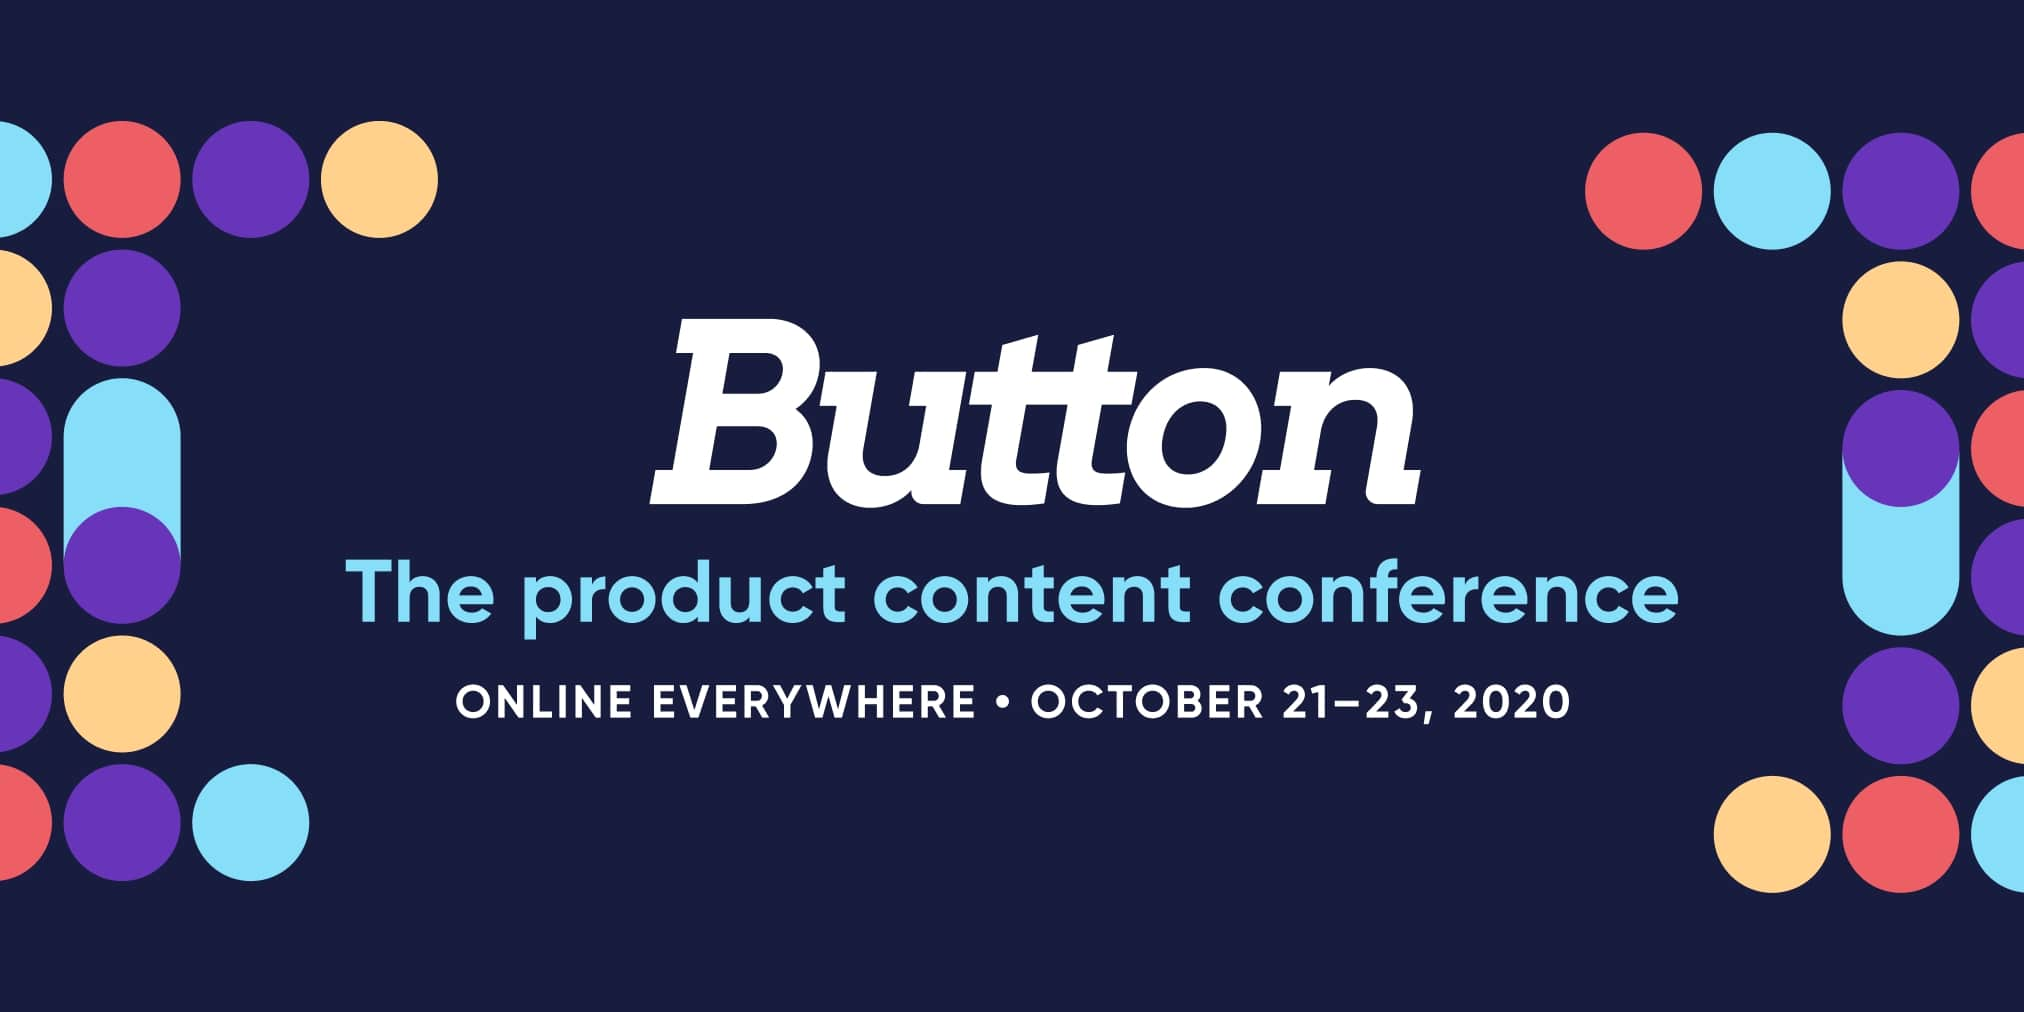 Promotional image for Button Conference stating the conference name, the fact it is happening online and the dates.